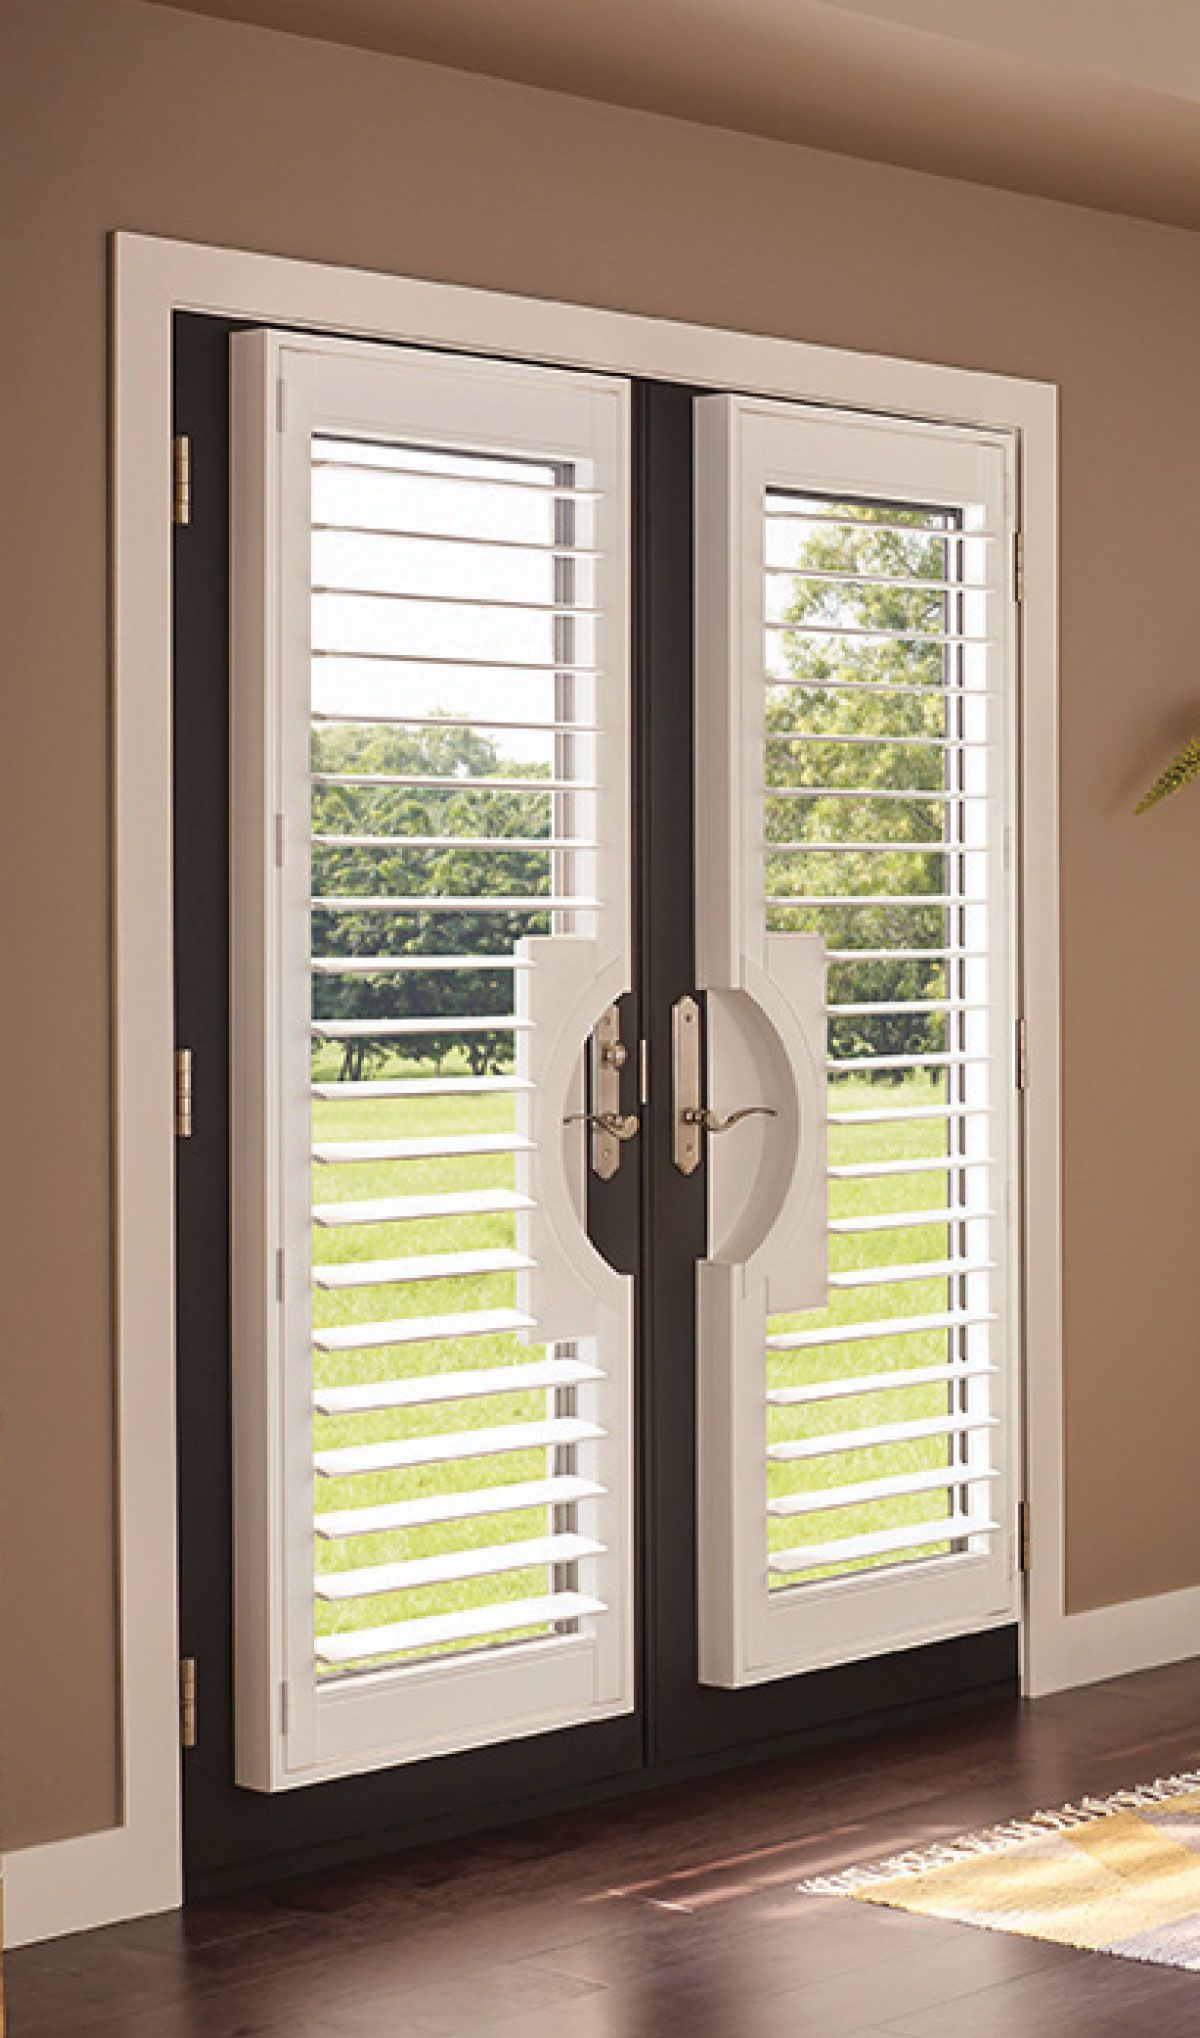 Advantages Of Interior Plantation Shutters Eclipse